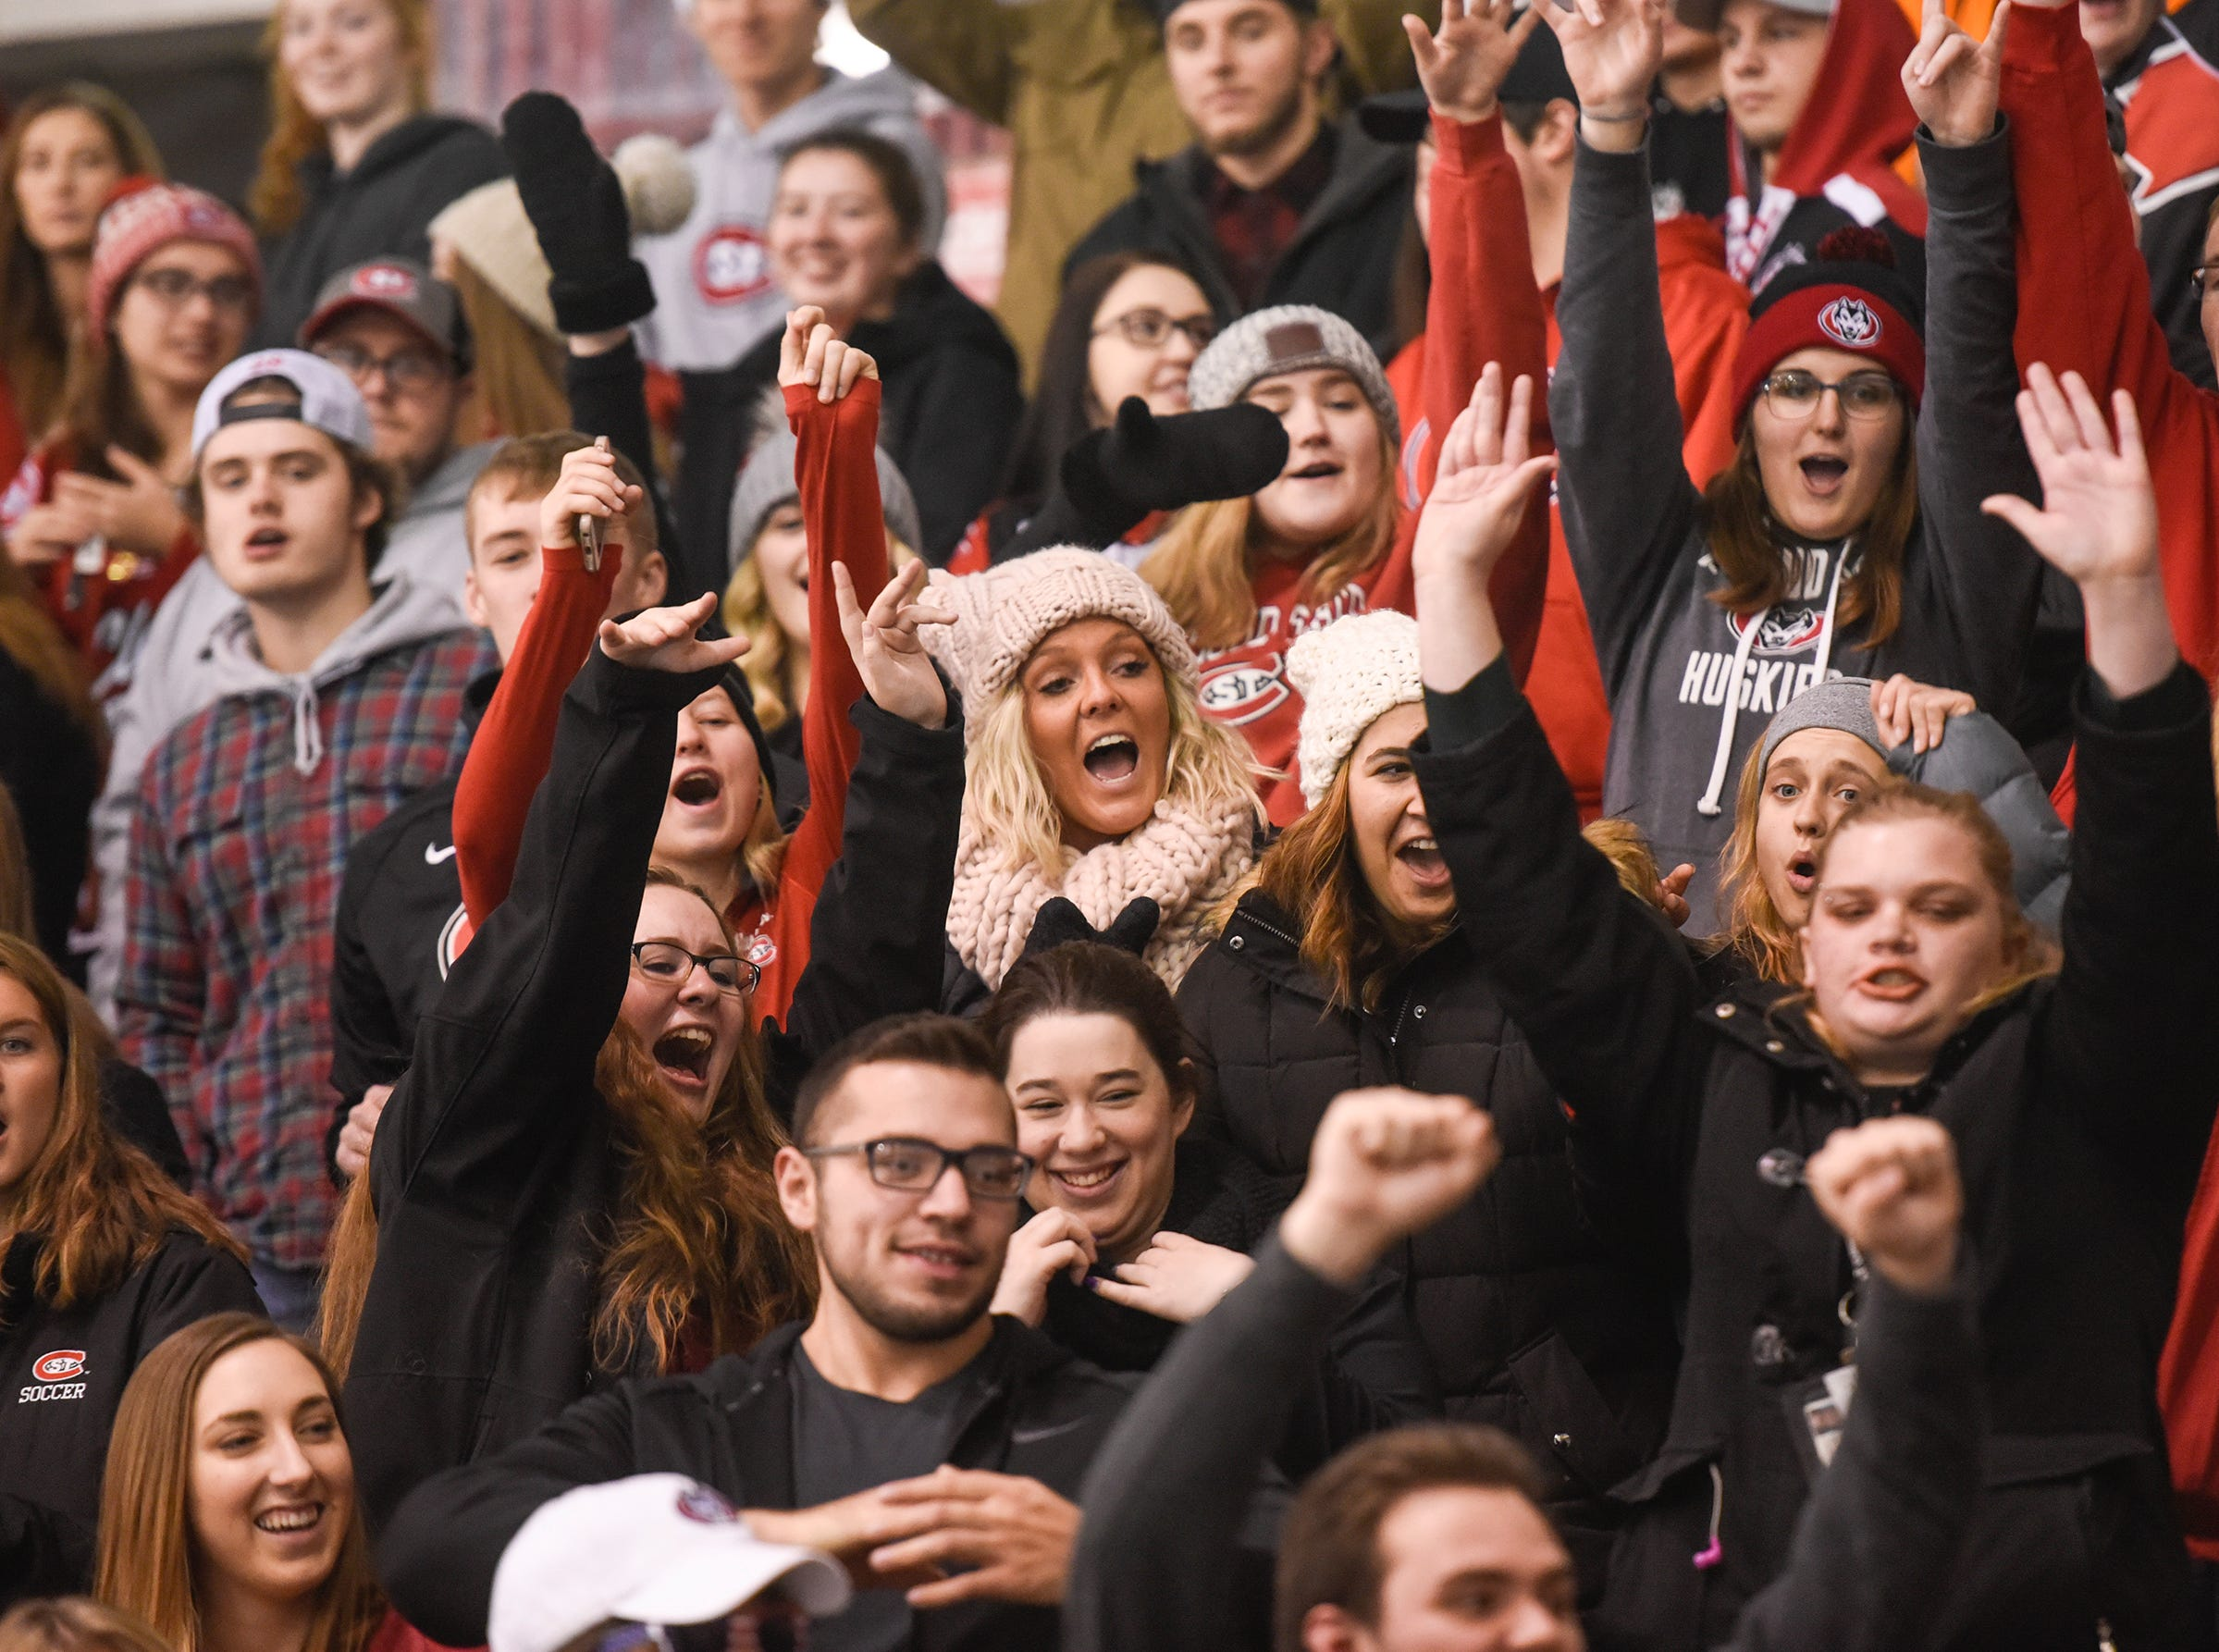 Husky fans cheer during the first period of the Friday, Nov. 9, game against Denver at the Herb Brooks National Hockey Center in St. Cloud.